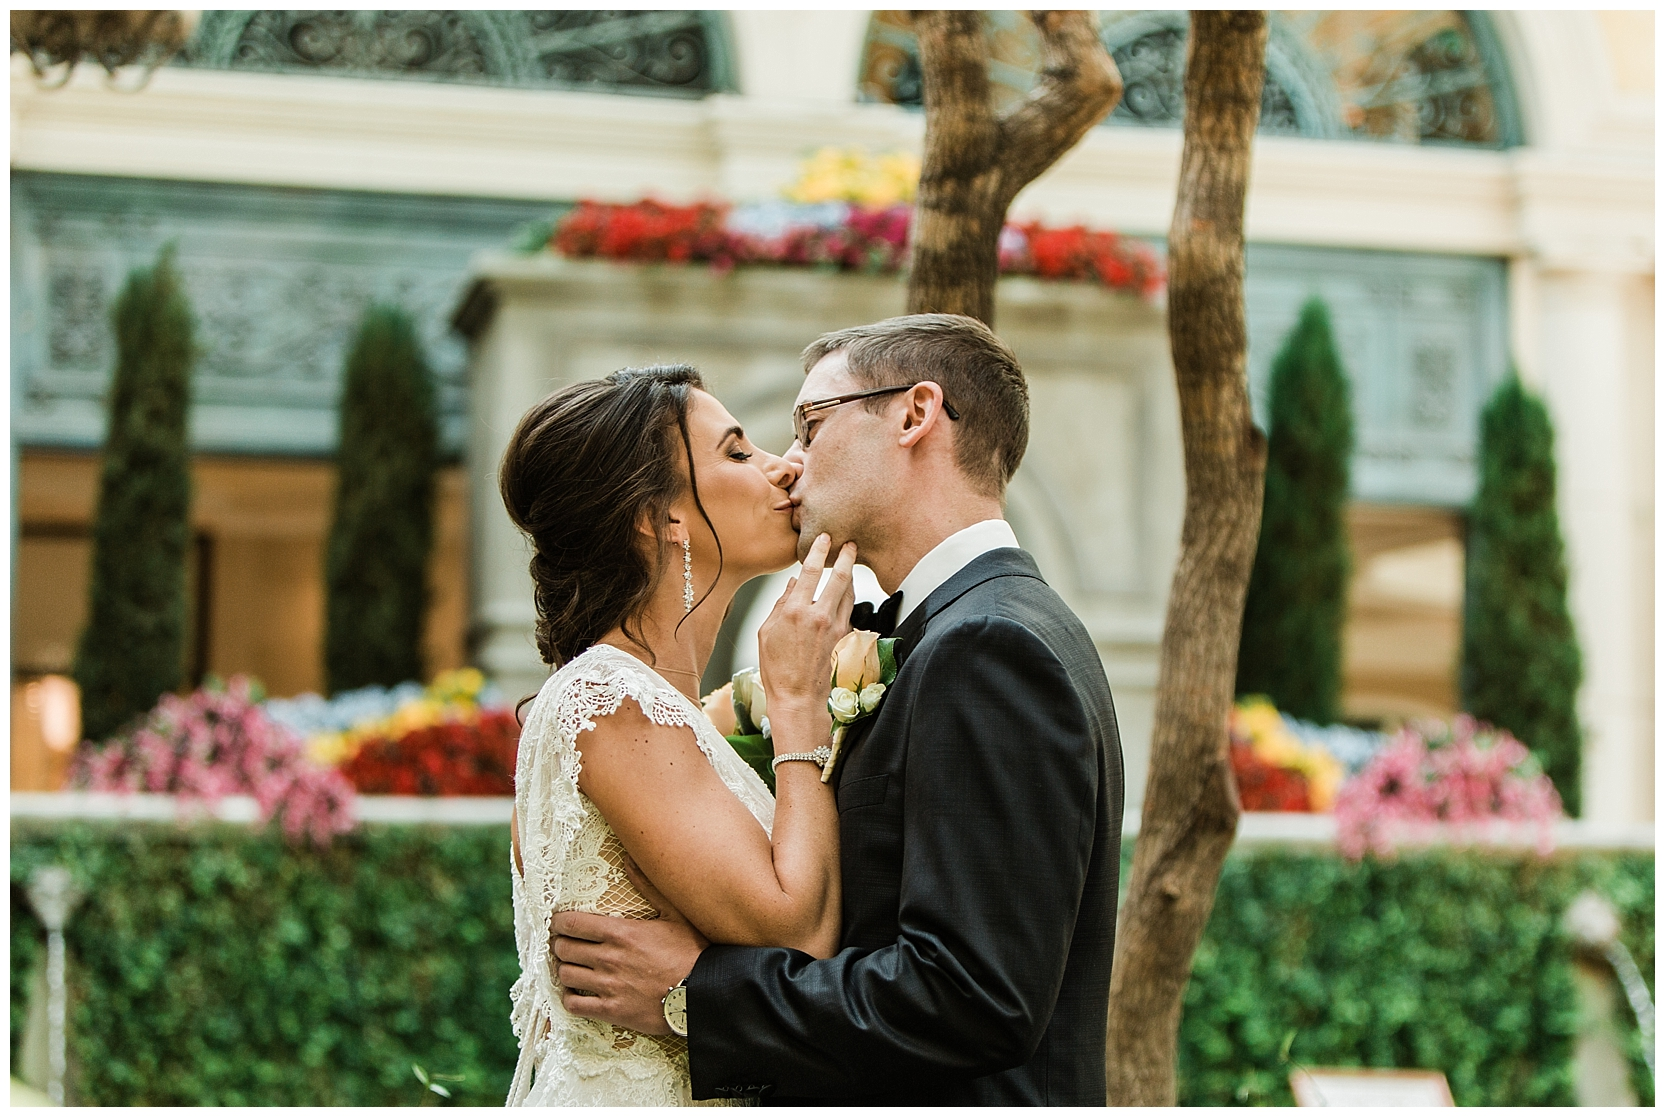 Las Vegas Elopement at the Bellagio photo by Lindsey Ramdin, L.A.R. Weddings